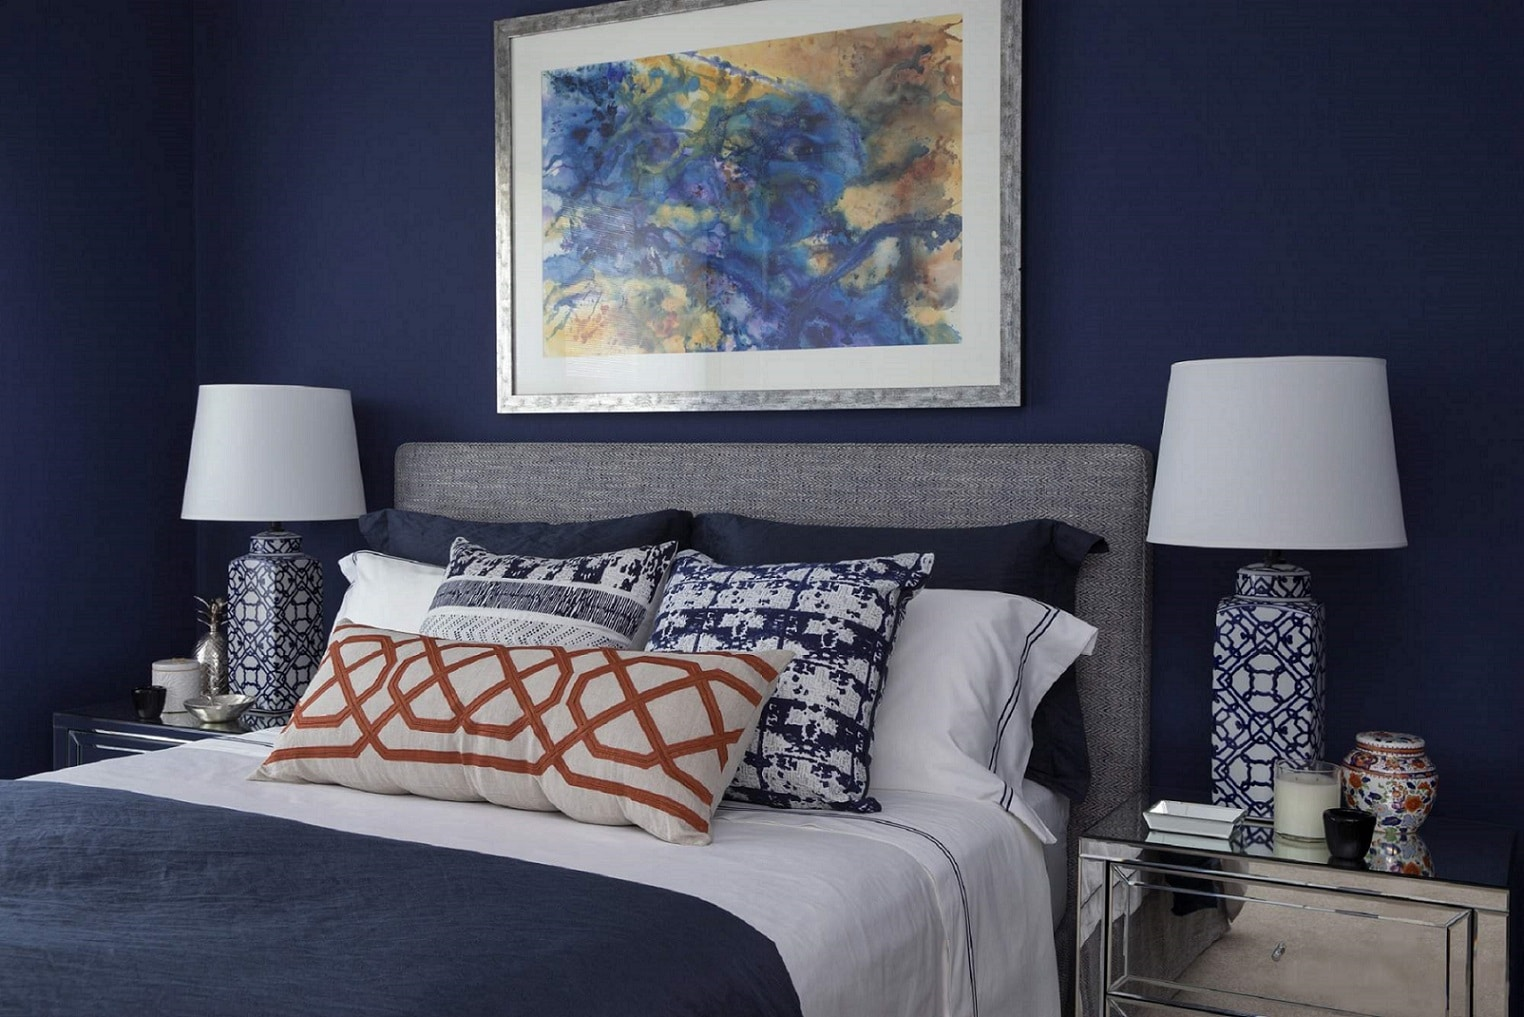 duffy guest bedroom styling tips lamps pillows art moody blue upholstered headboard